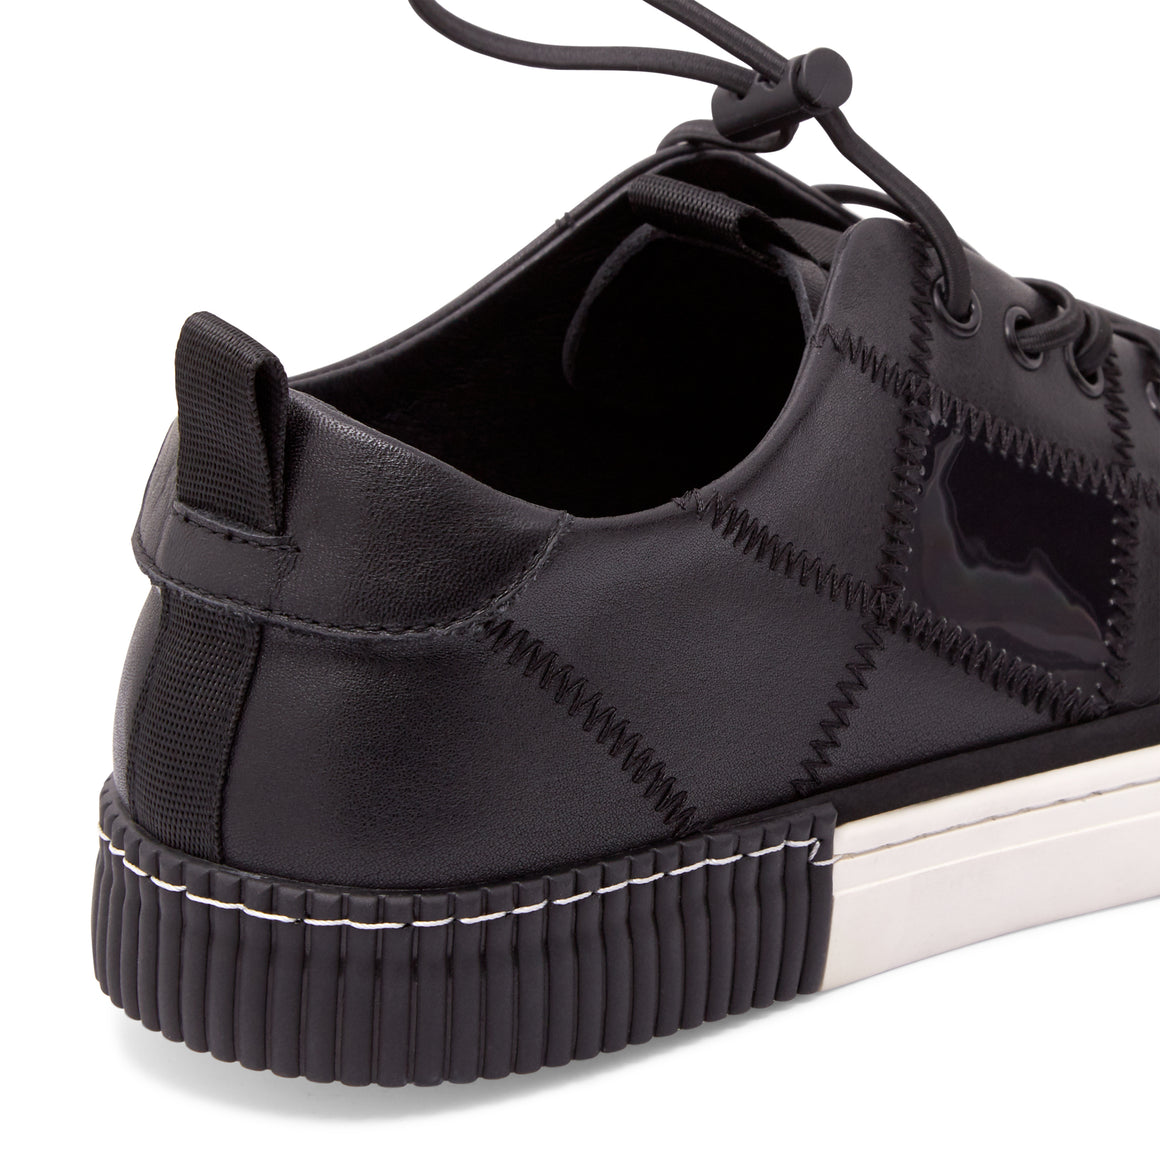 Java Black Sneakers